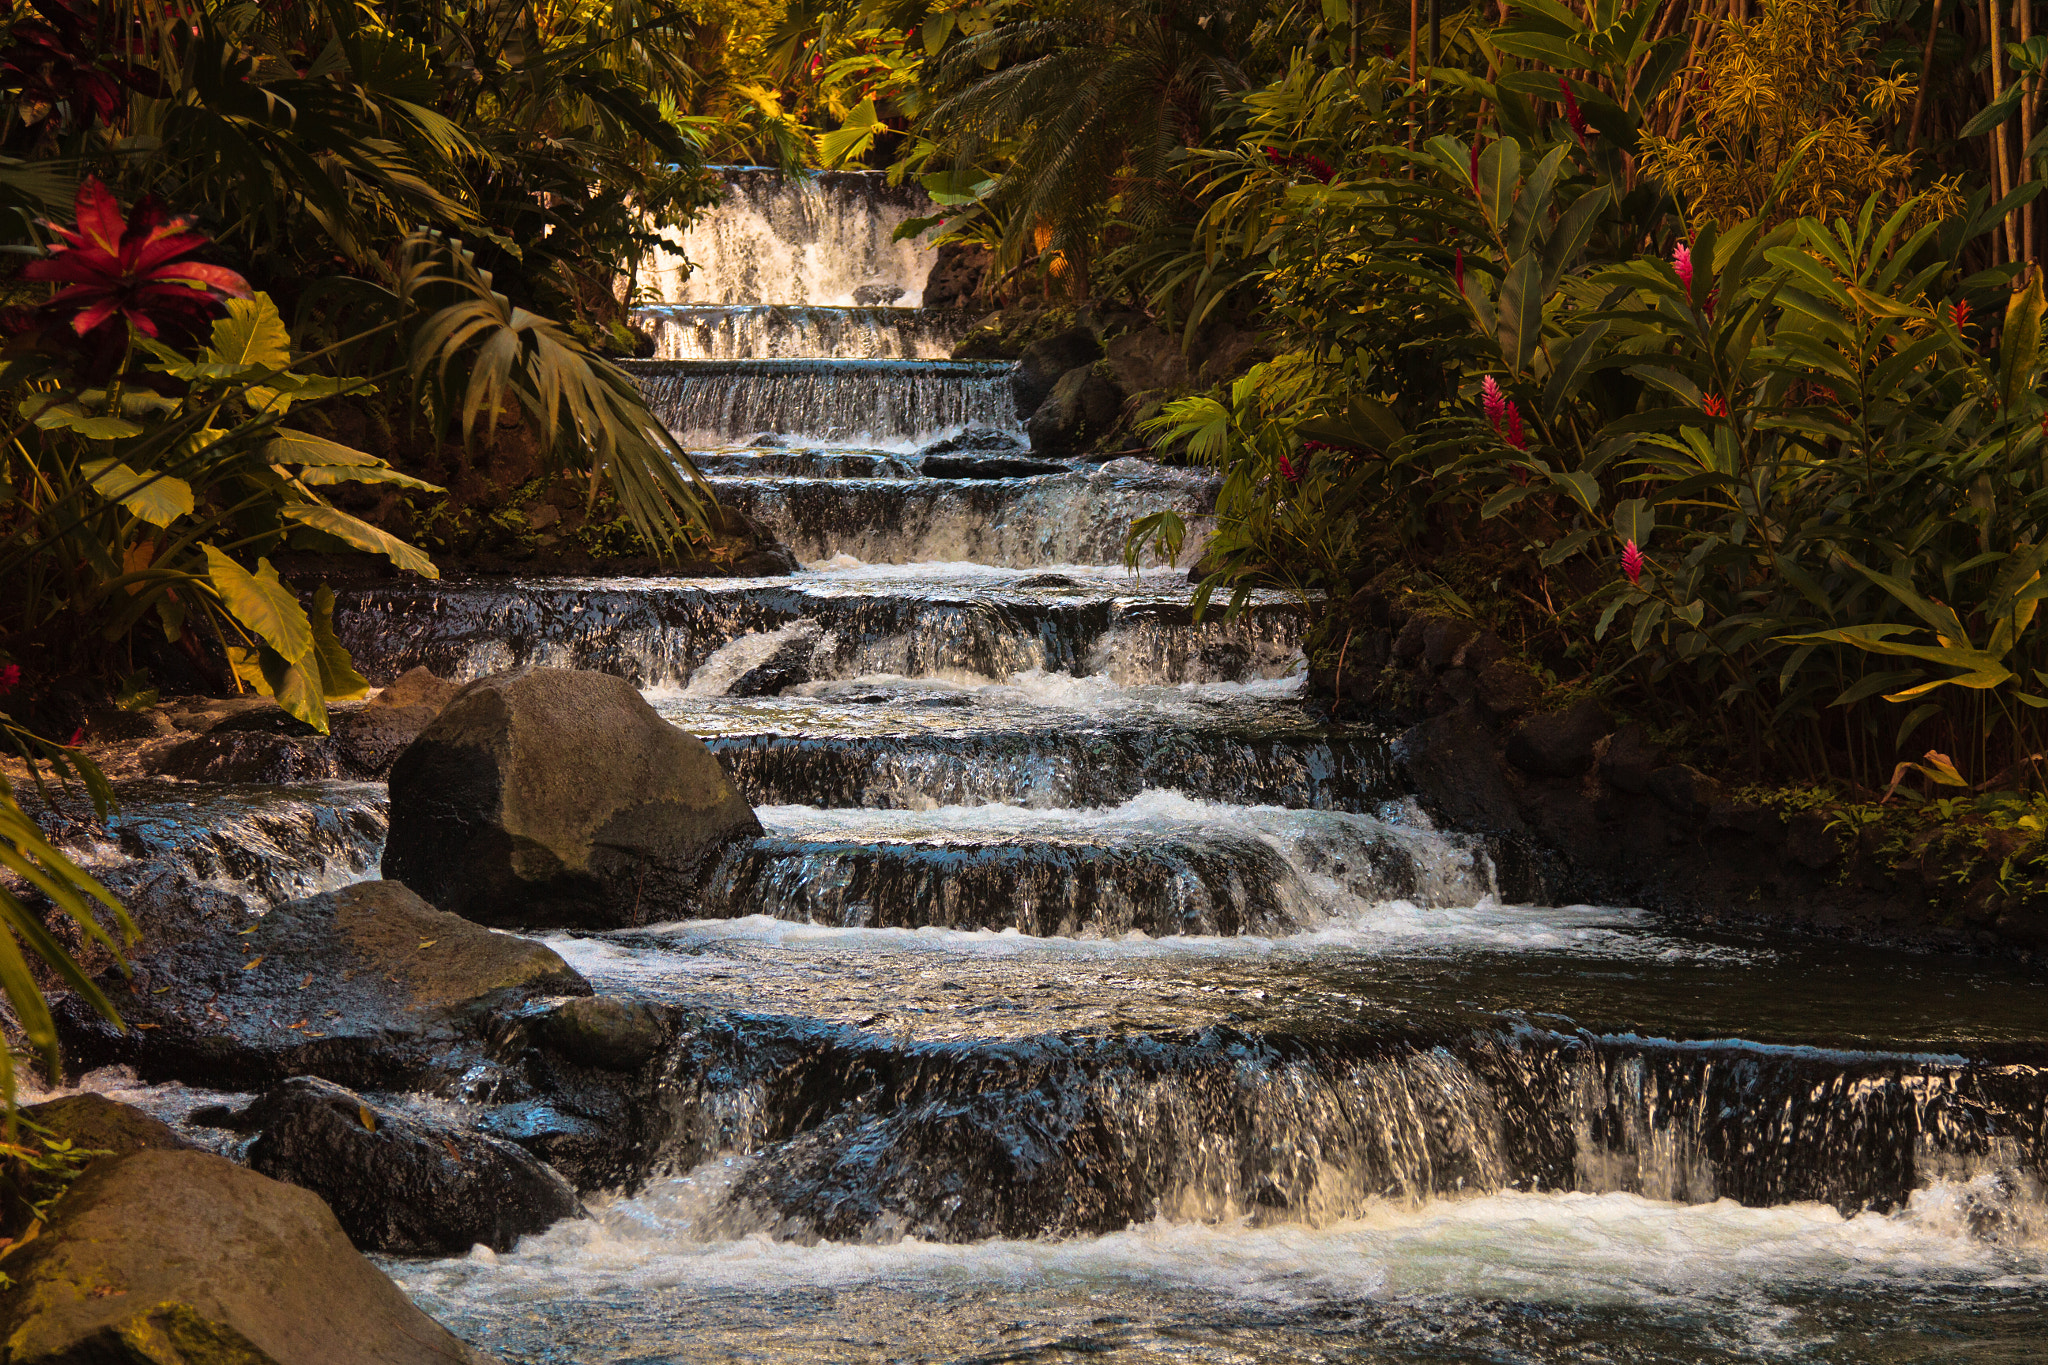 Photograph Tabacon main Waterfalls by Etienne Tremblay on 500px